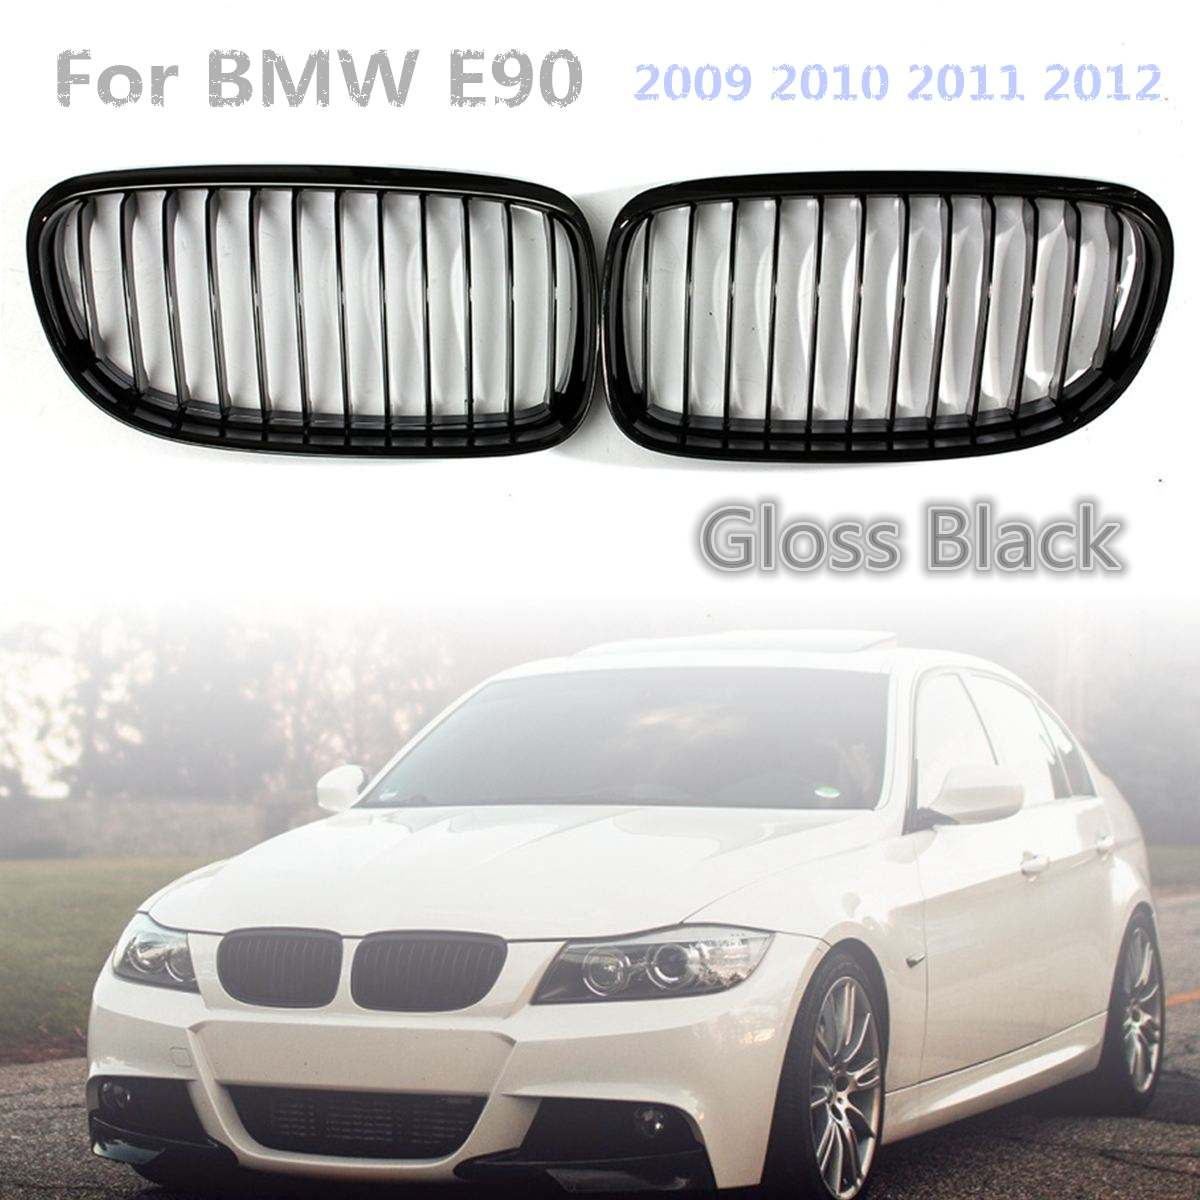 1 Pair Gloss Black Car Baking Varnish Front Kidney Grille Grill For BMW E90 2009 2010 2011 2012 Car Styling